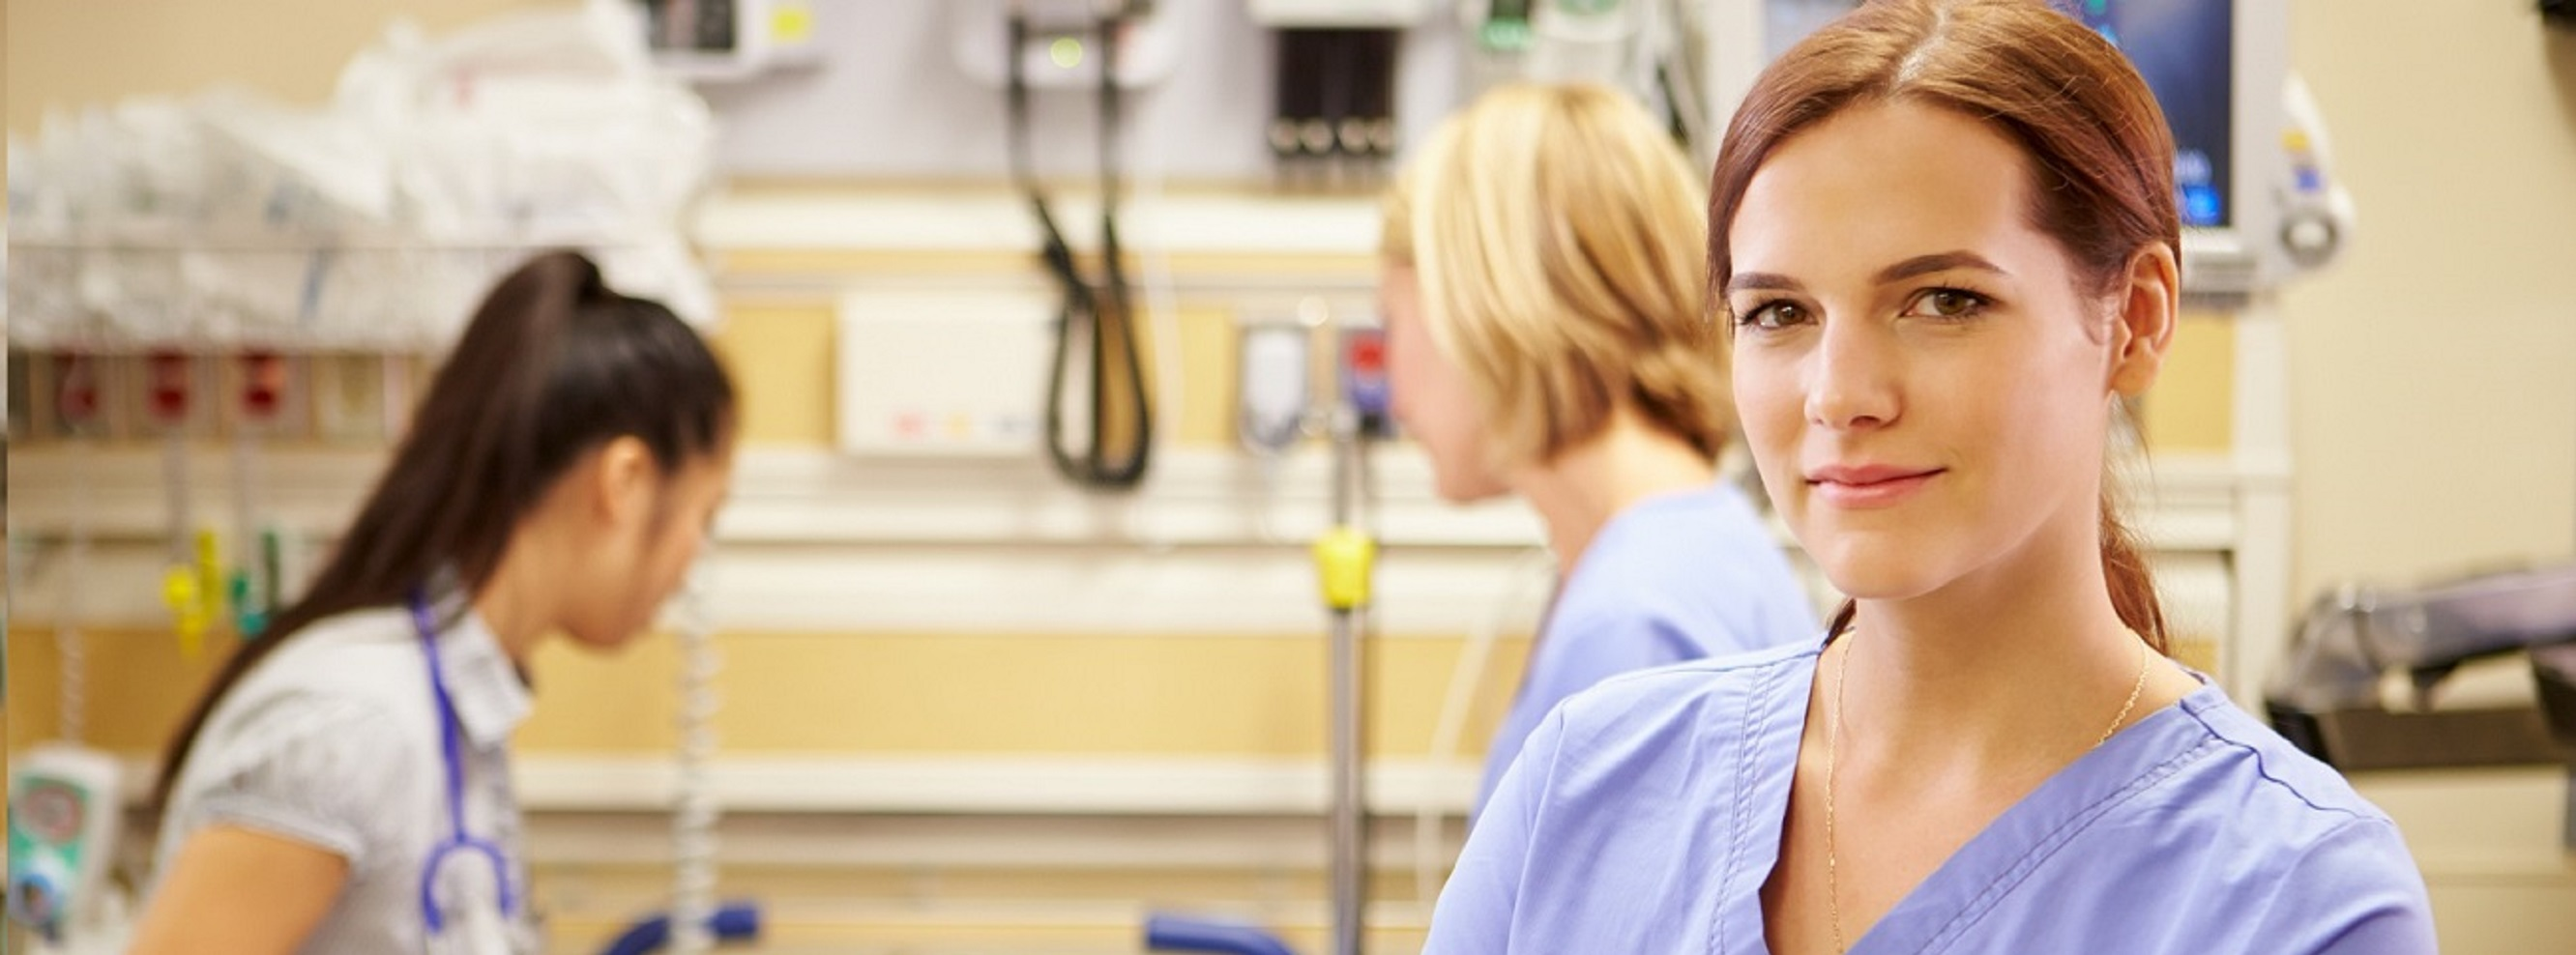 shutterstock_168768410_Portrait Of Nurse Working In Emergency Room